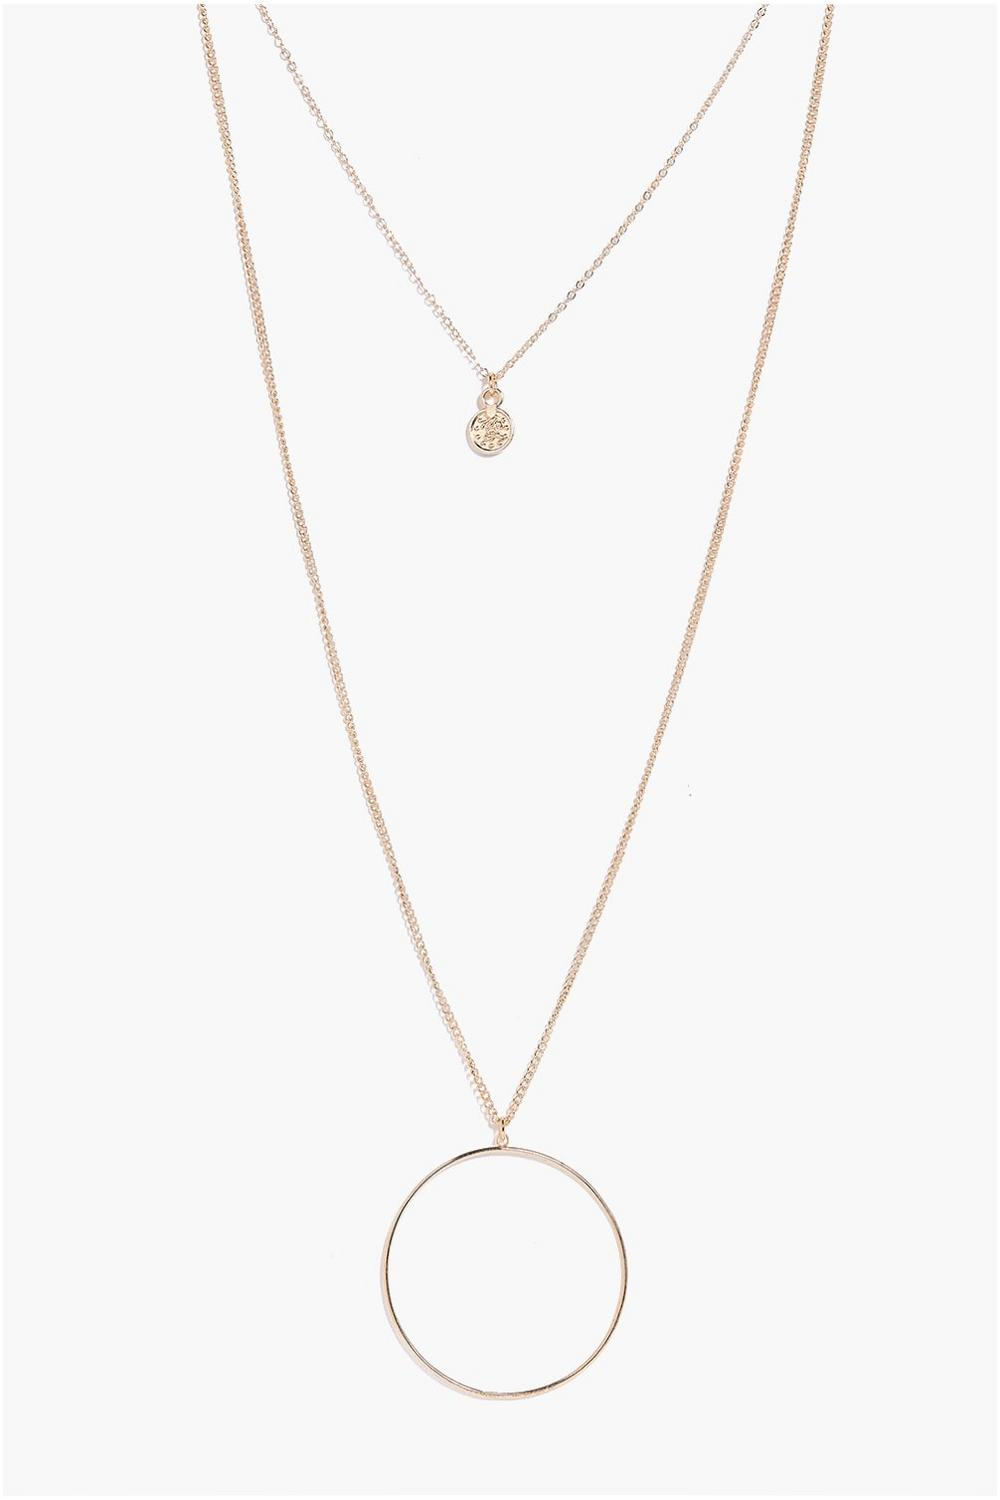 Alexis Coin Layered Necklace